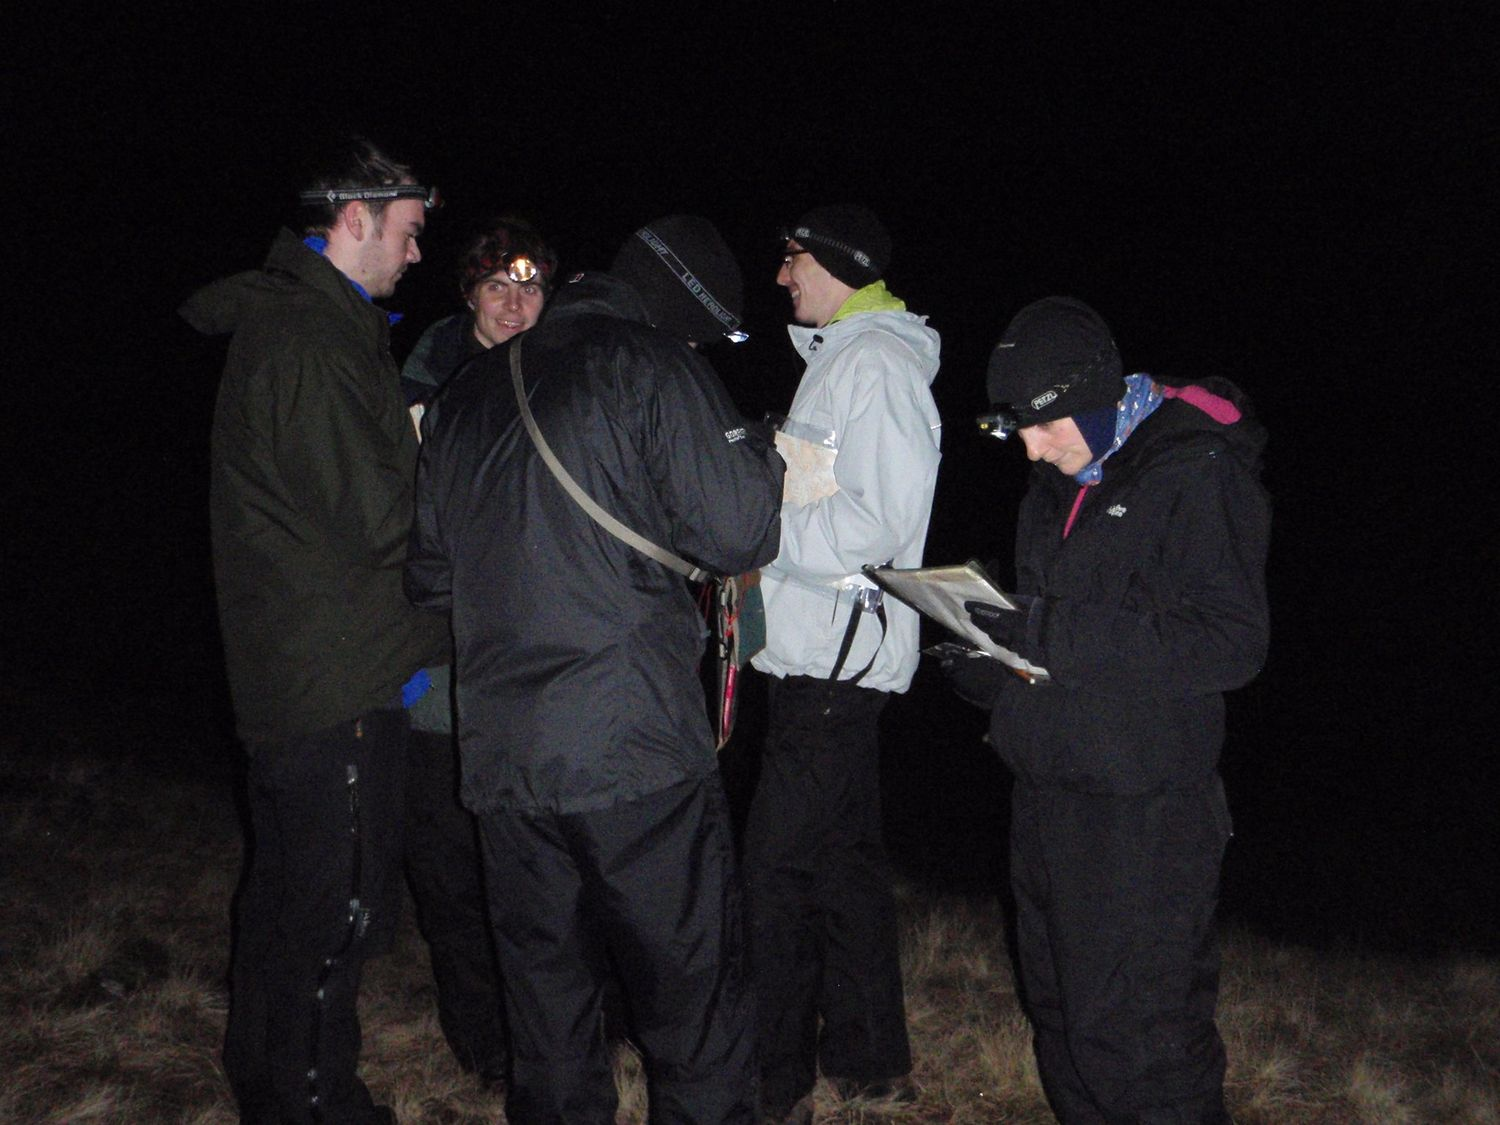 A group of mountaineers looking at maps in the dark - Chris Ensoll Mountain Guide